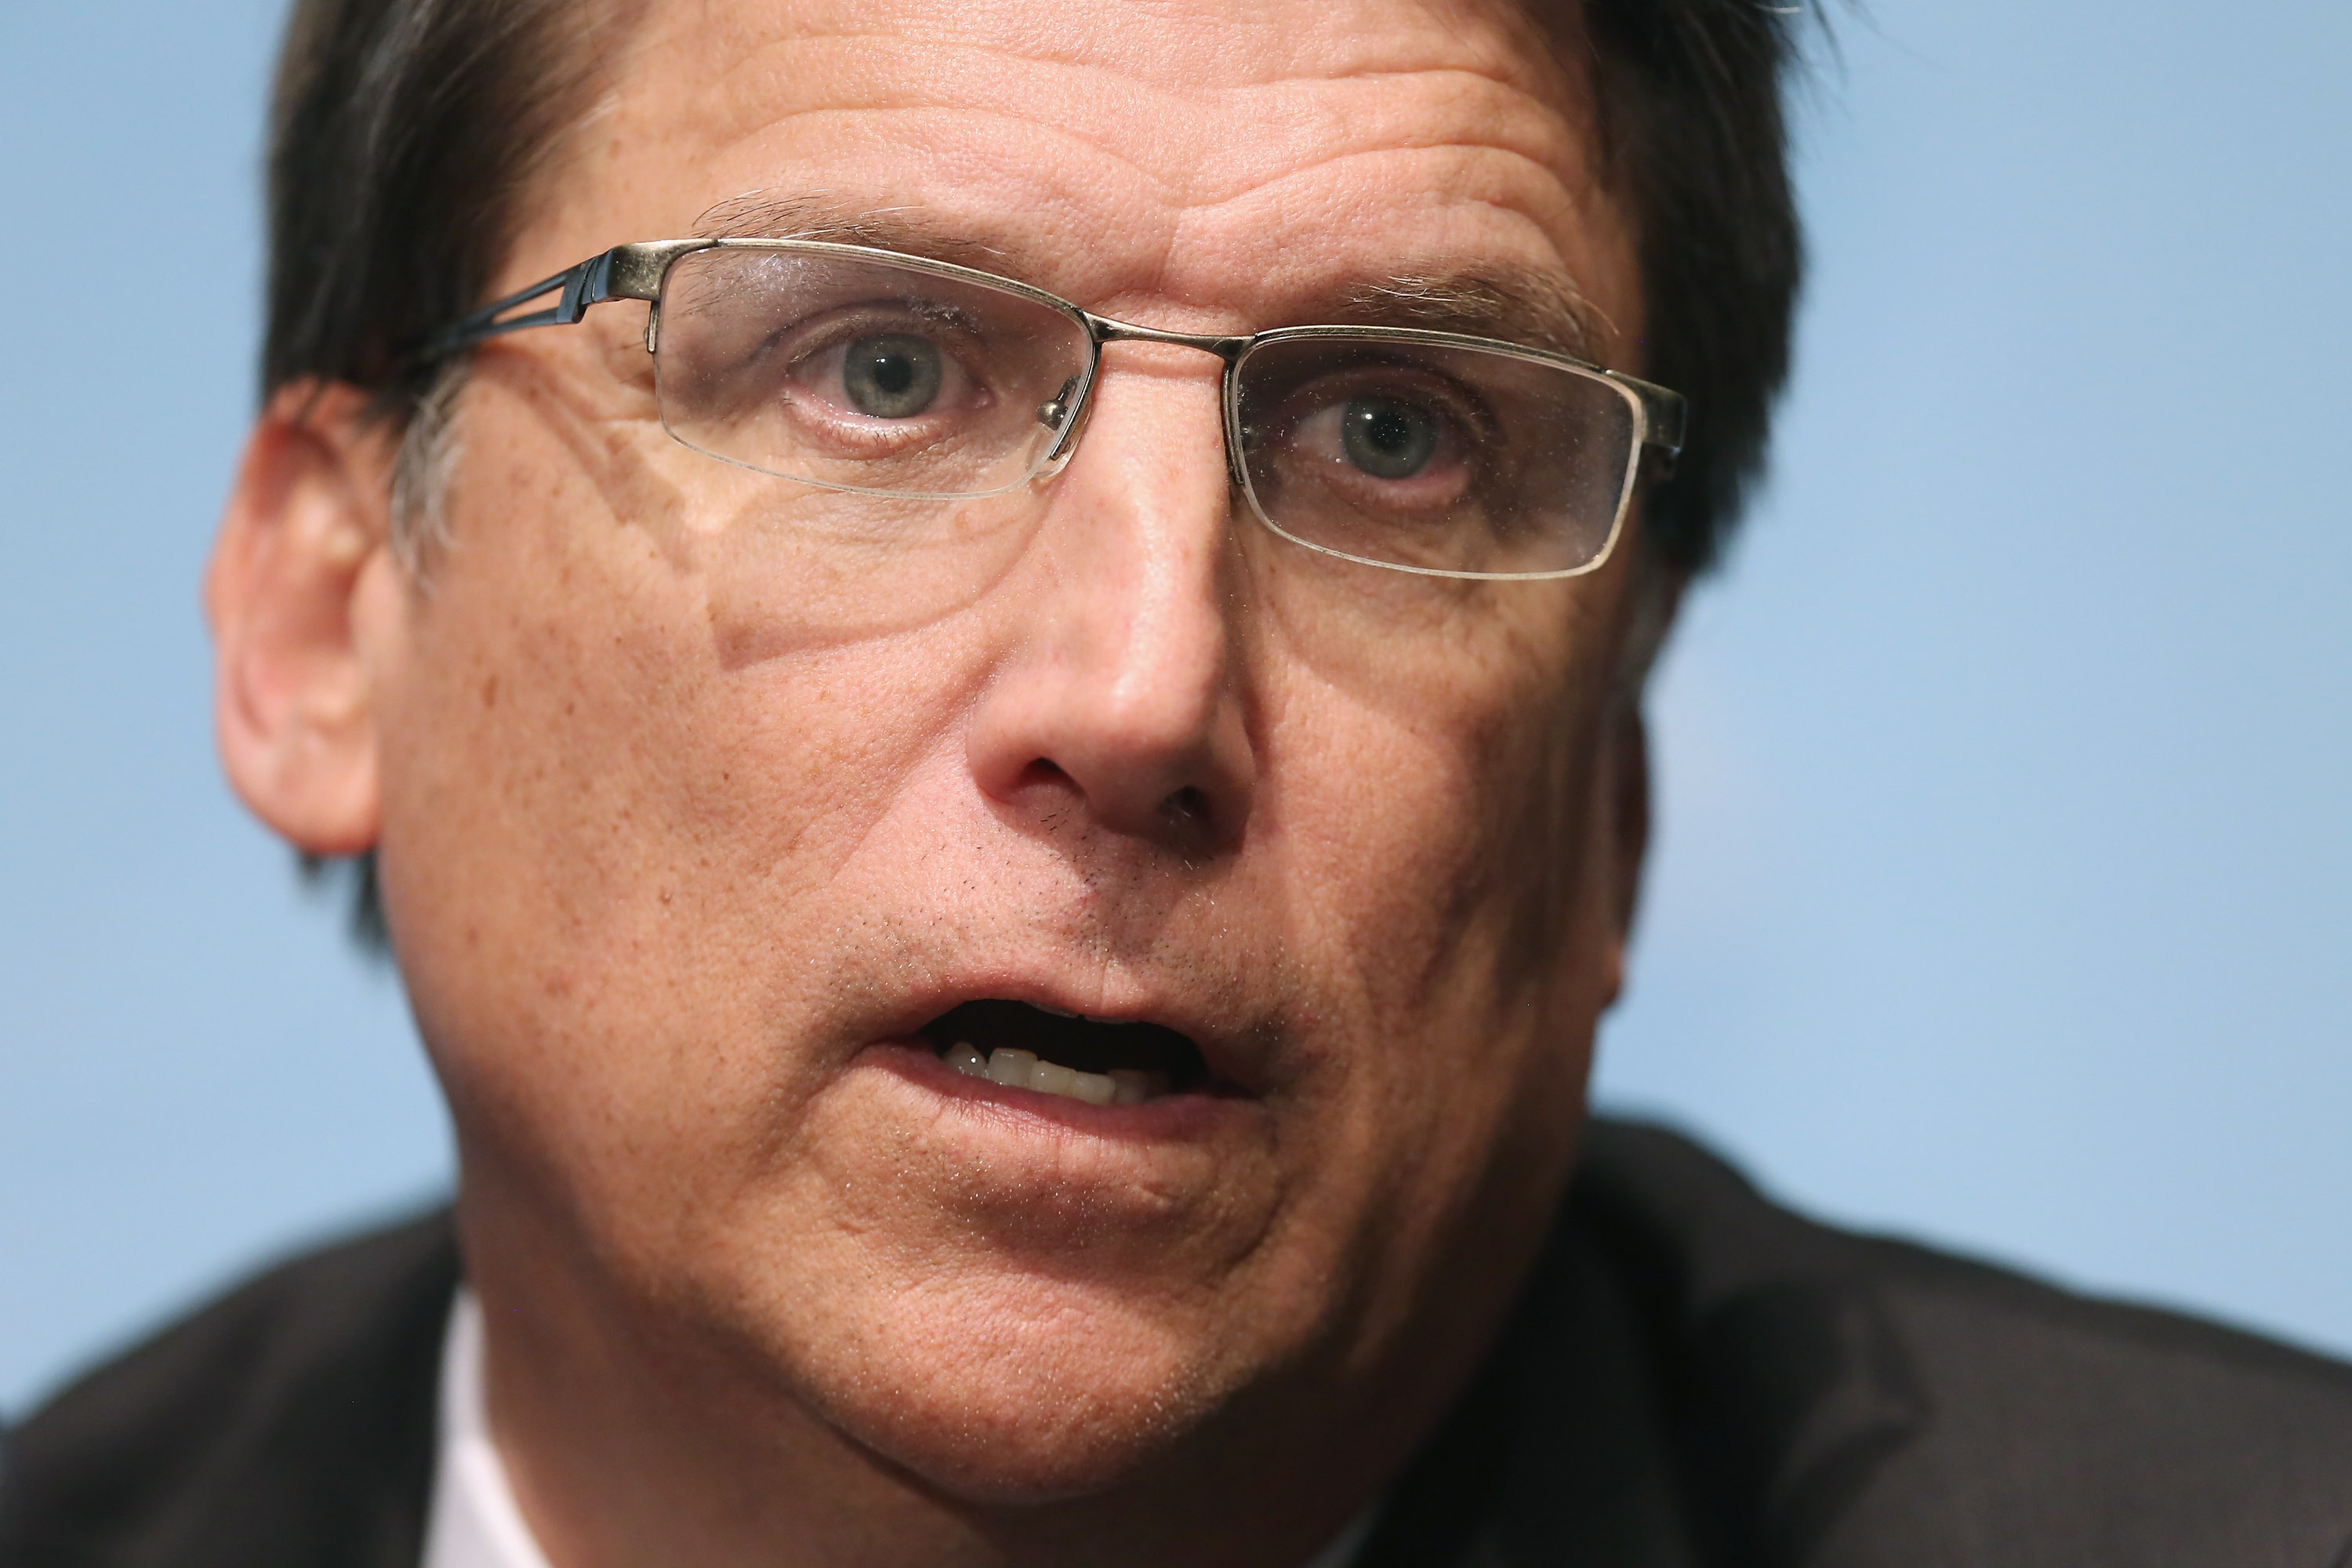 North Carolina Governor Pat McCrory holds a news conference with fellow members of the Republican Governors Association at the U.S. Chamber of Commerce  on Feb. 23, 2015 in Washington, DC.